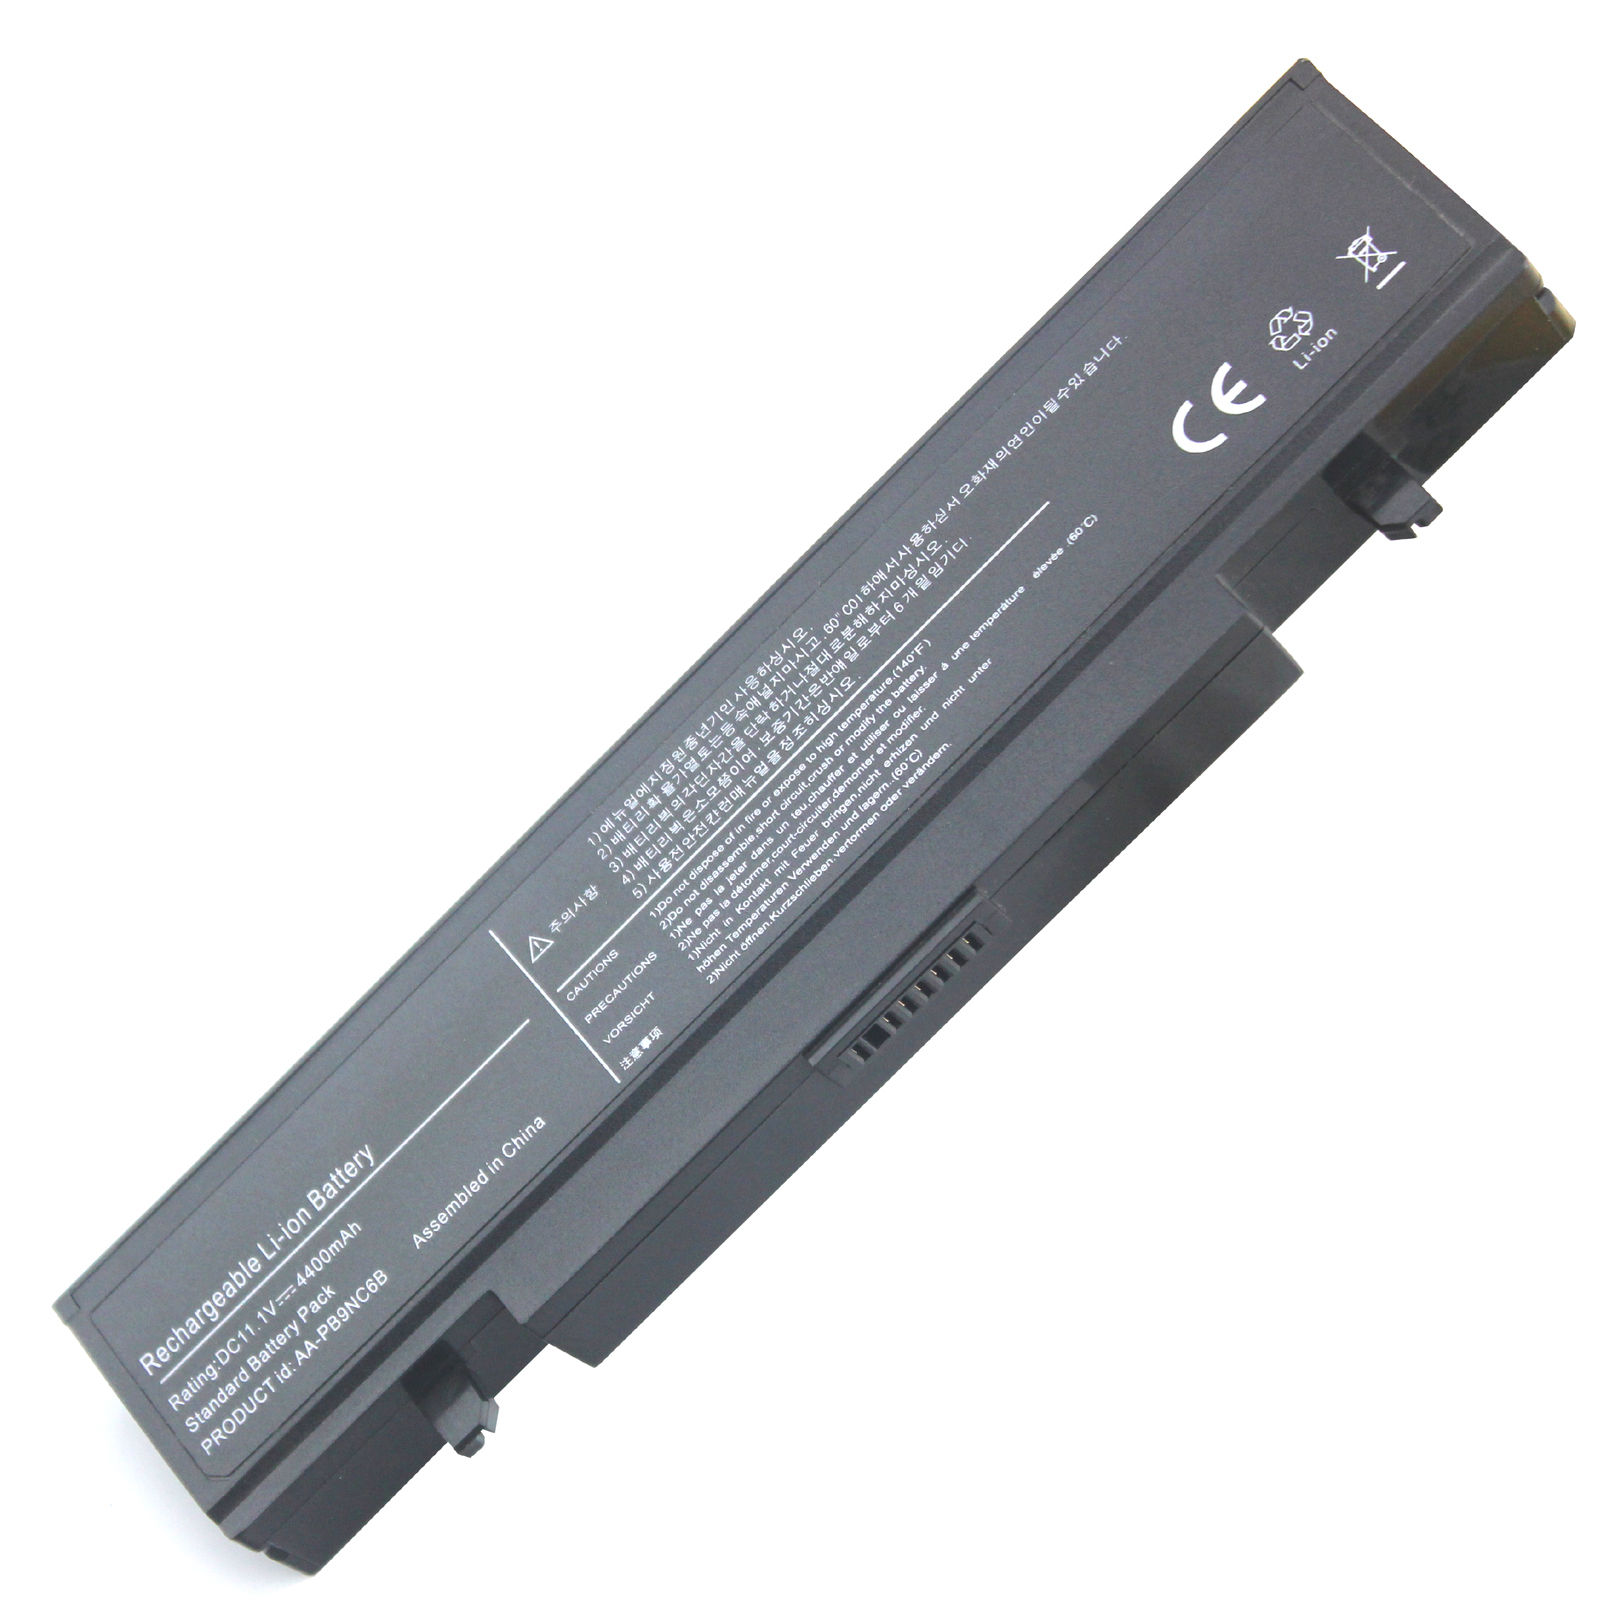 OEM Samsung RV511 R428 Battery